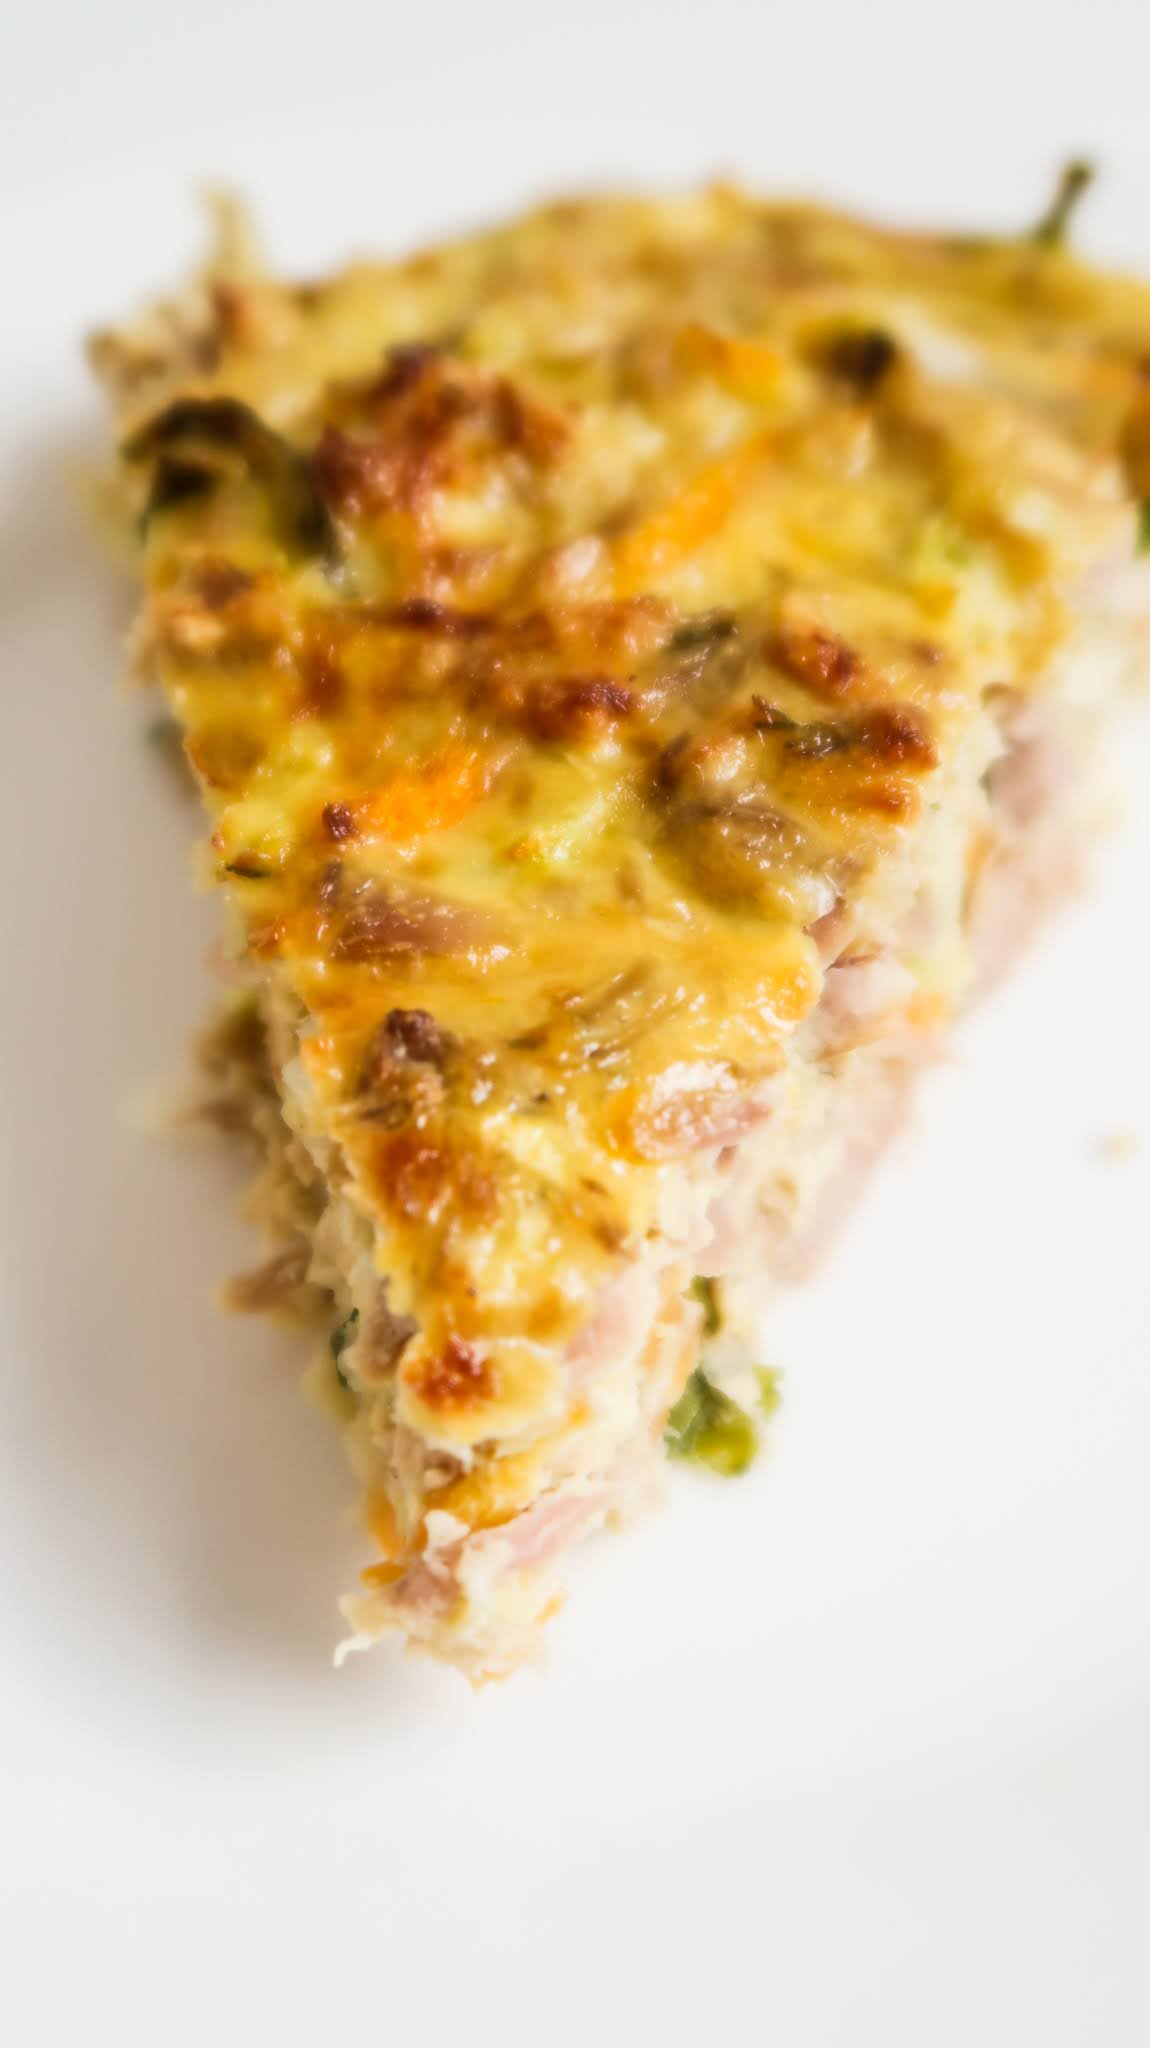 Crustless Tuna Quiche Recipe: Easy healthy lunch idea